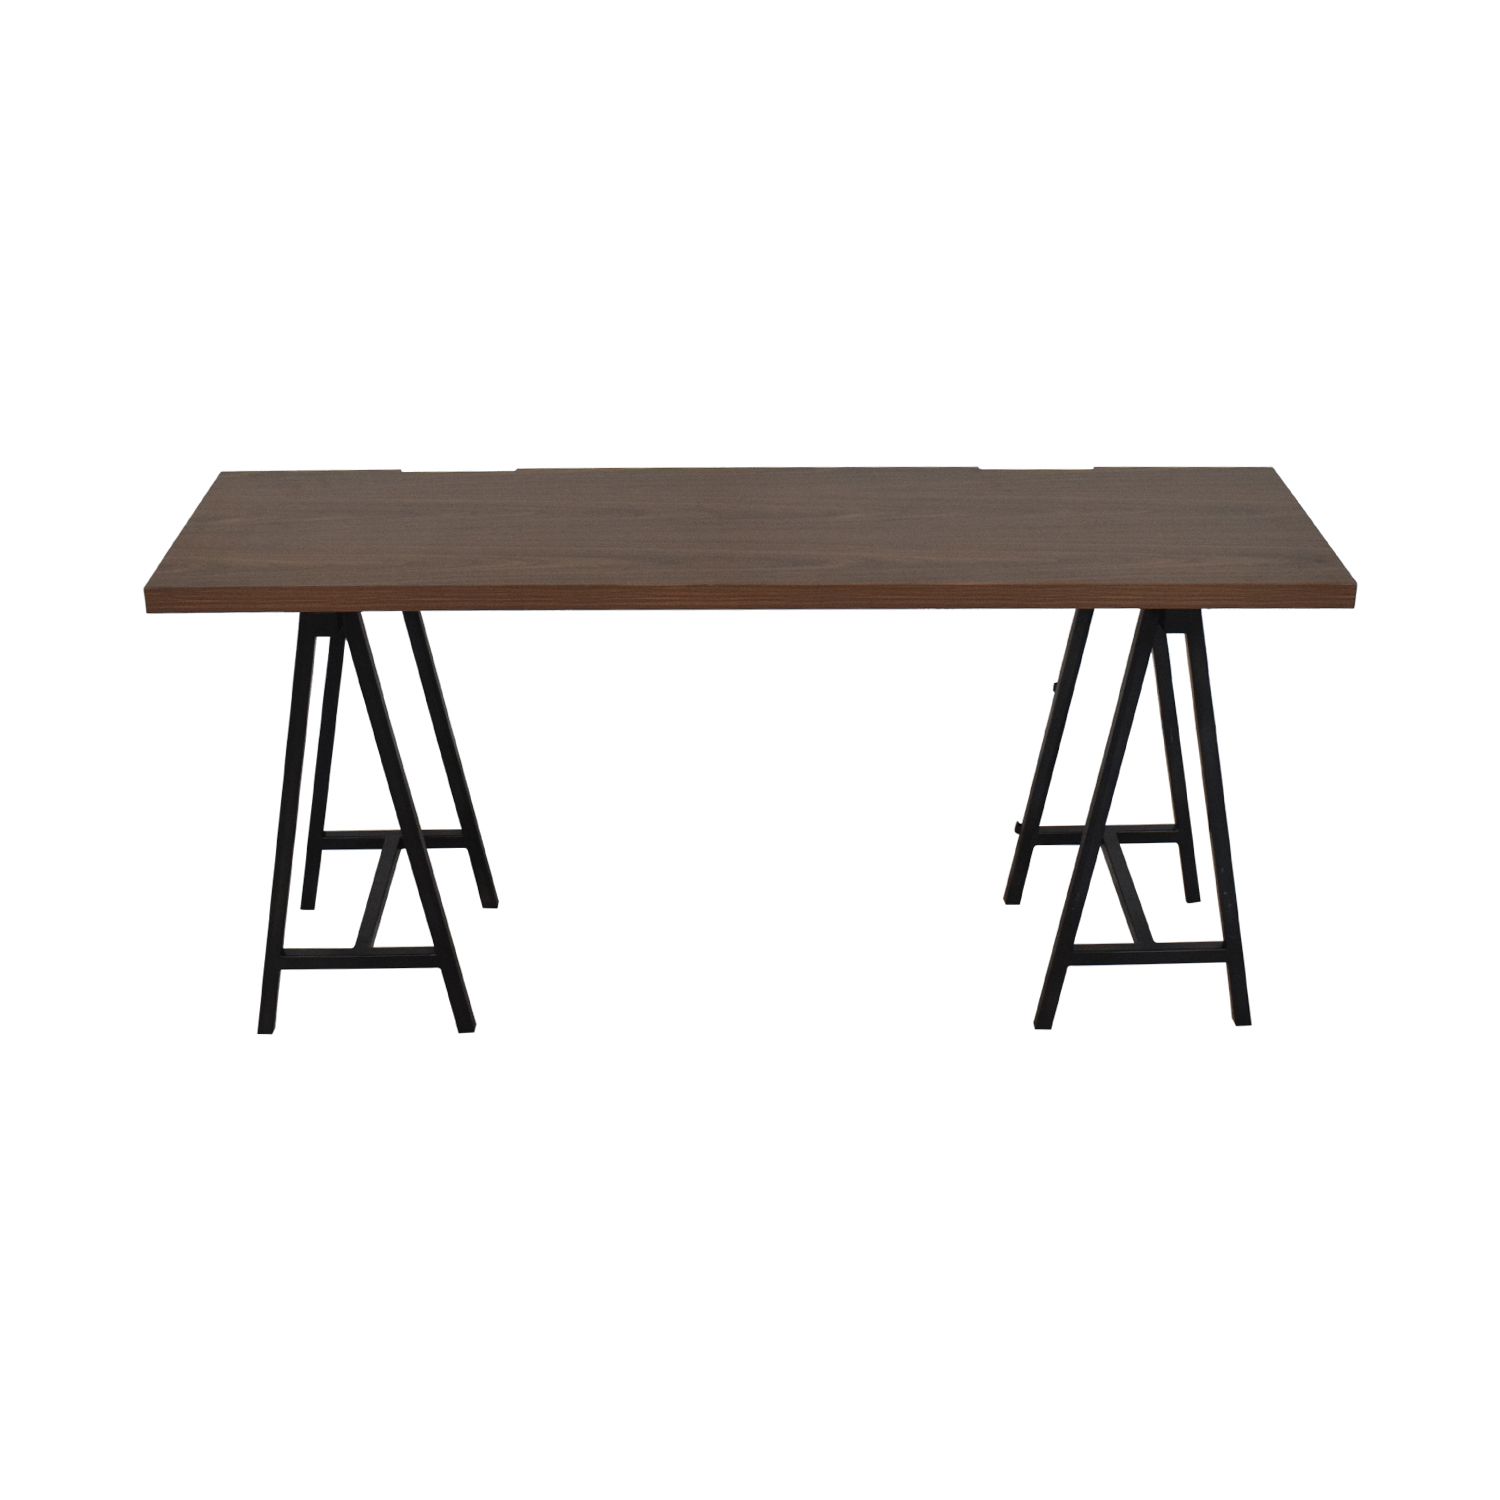 West Elm West Elm Cross-Base Desk Tables